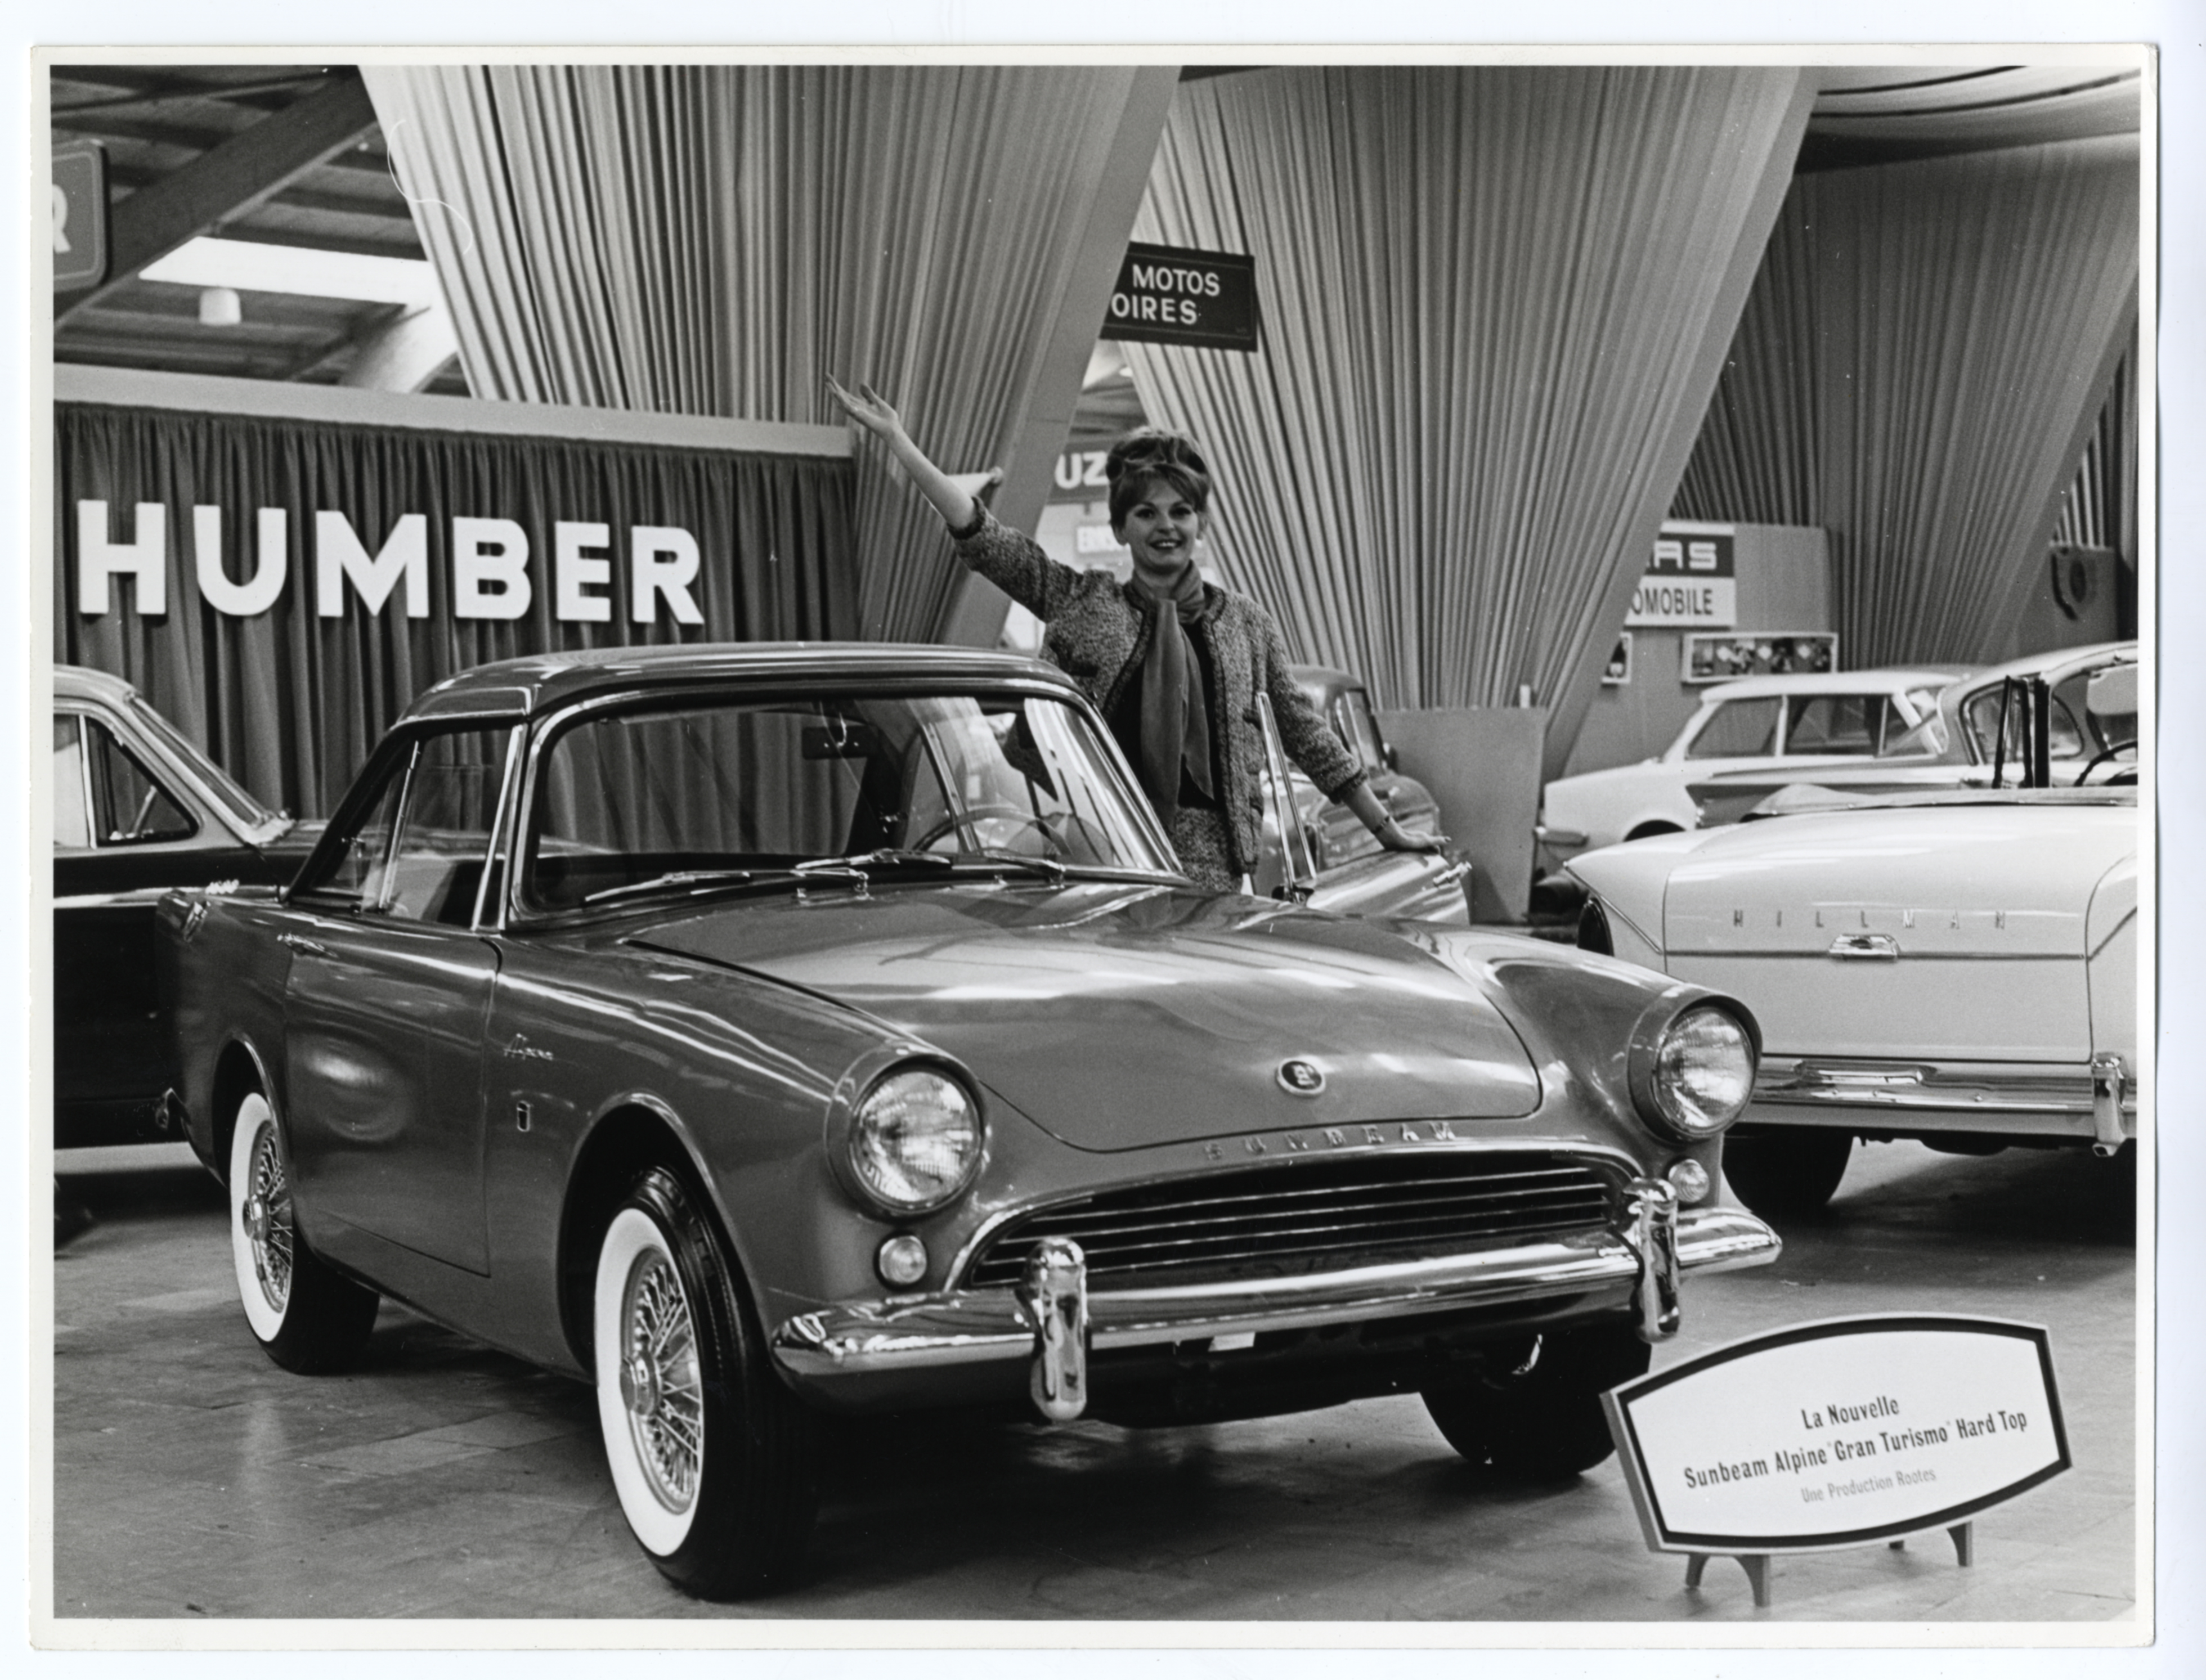 All sunbeam car company models list of sunbeam car company cars -  And The Sunbeam Tiger And Sunbeam Alpine Photographs Of Motor Shows And Publicity Shots Demonstrate How The Rootes Group Advertised Their Vehicles To